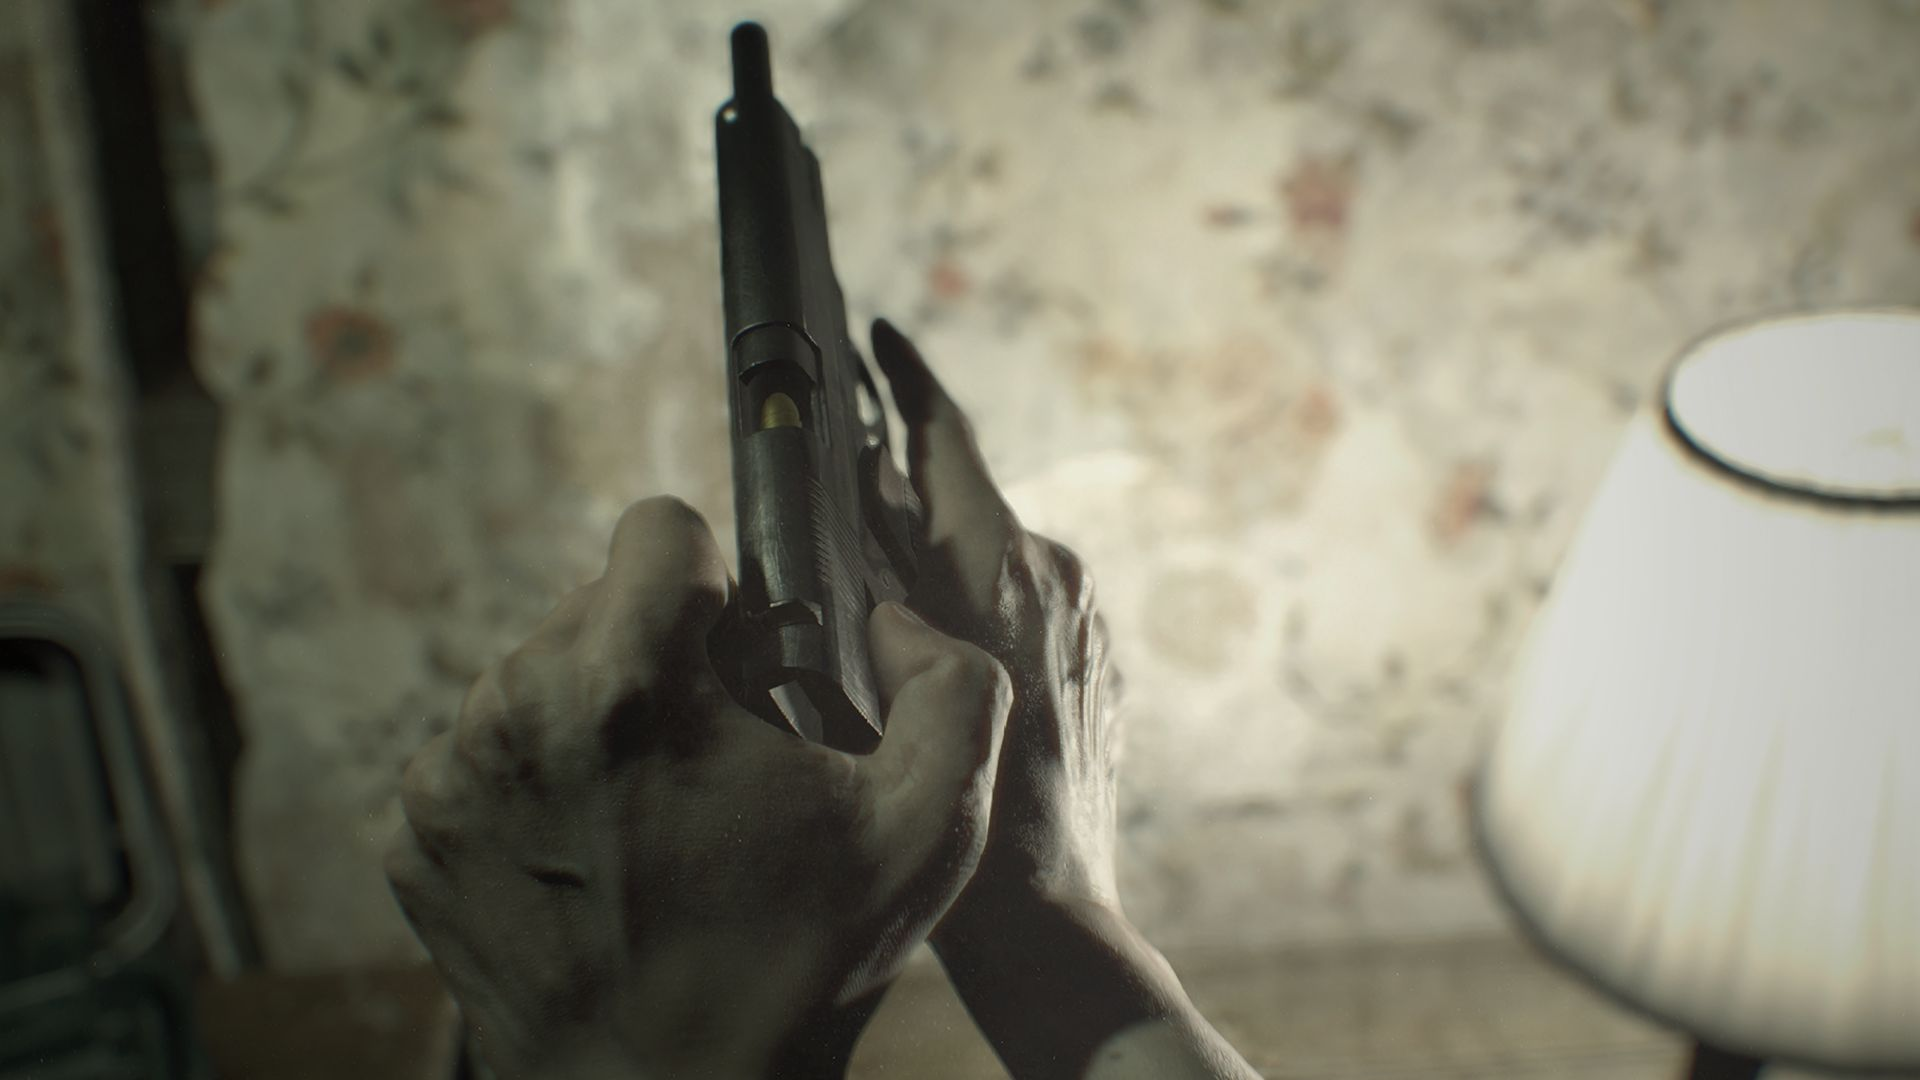 You can beat resident evil 7 in 93 minutes or at least this guy